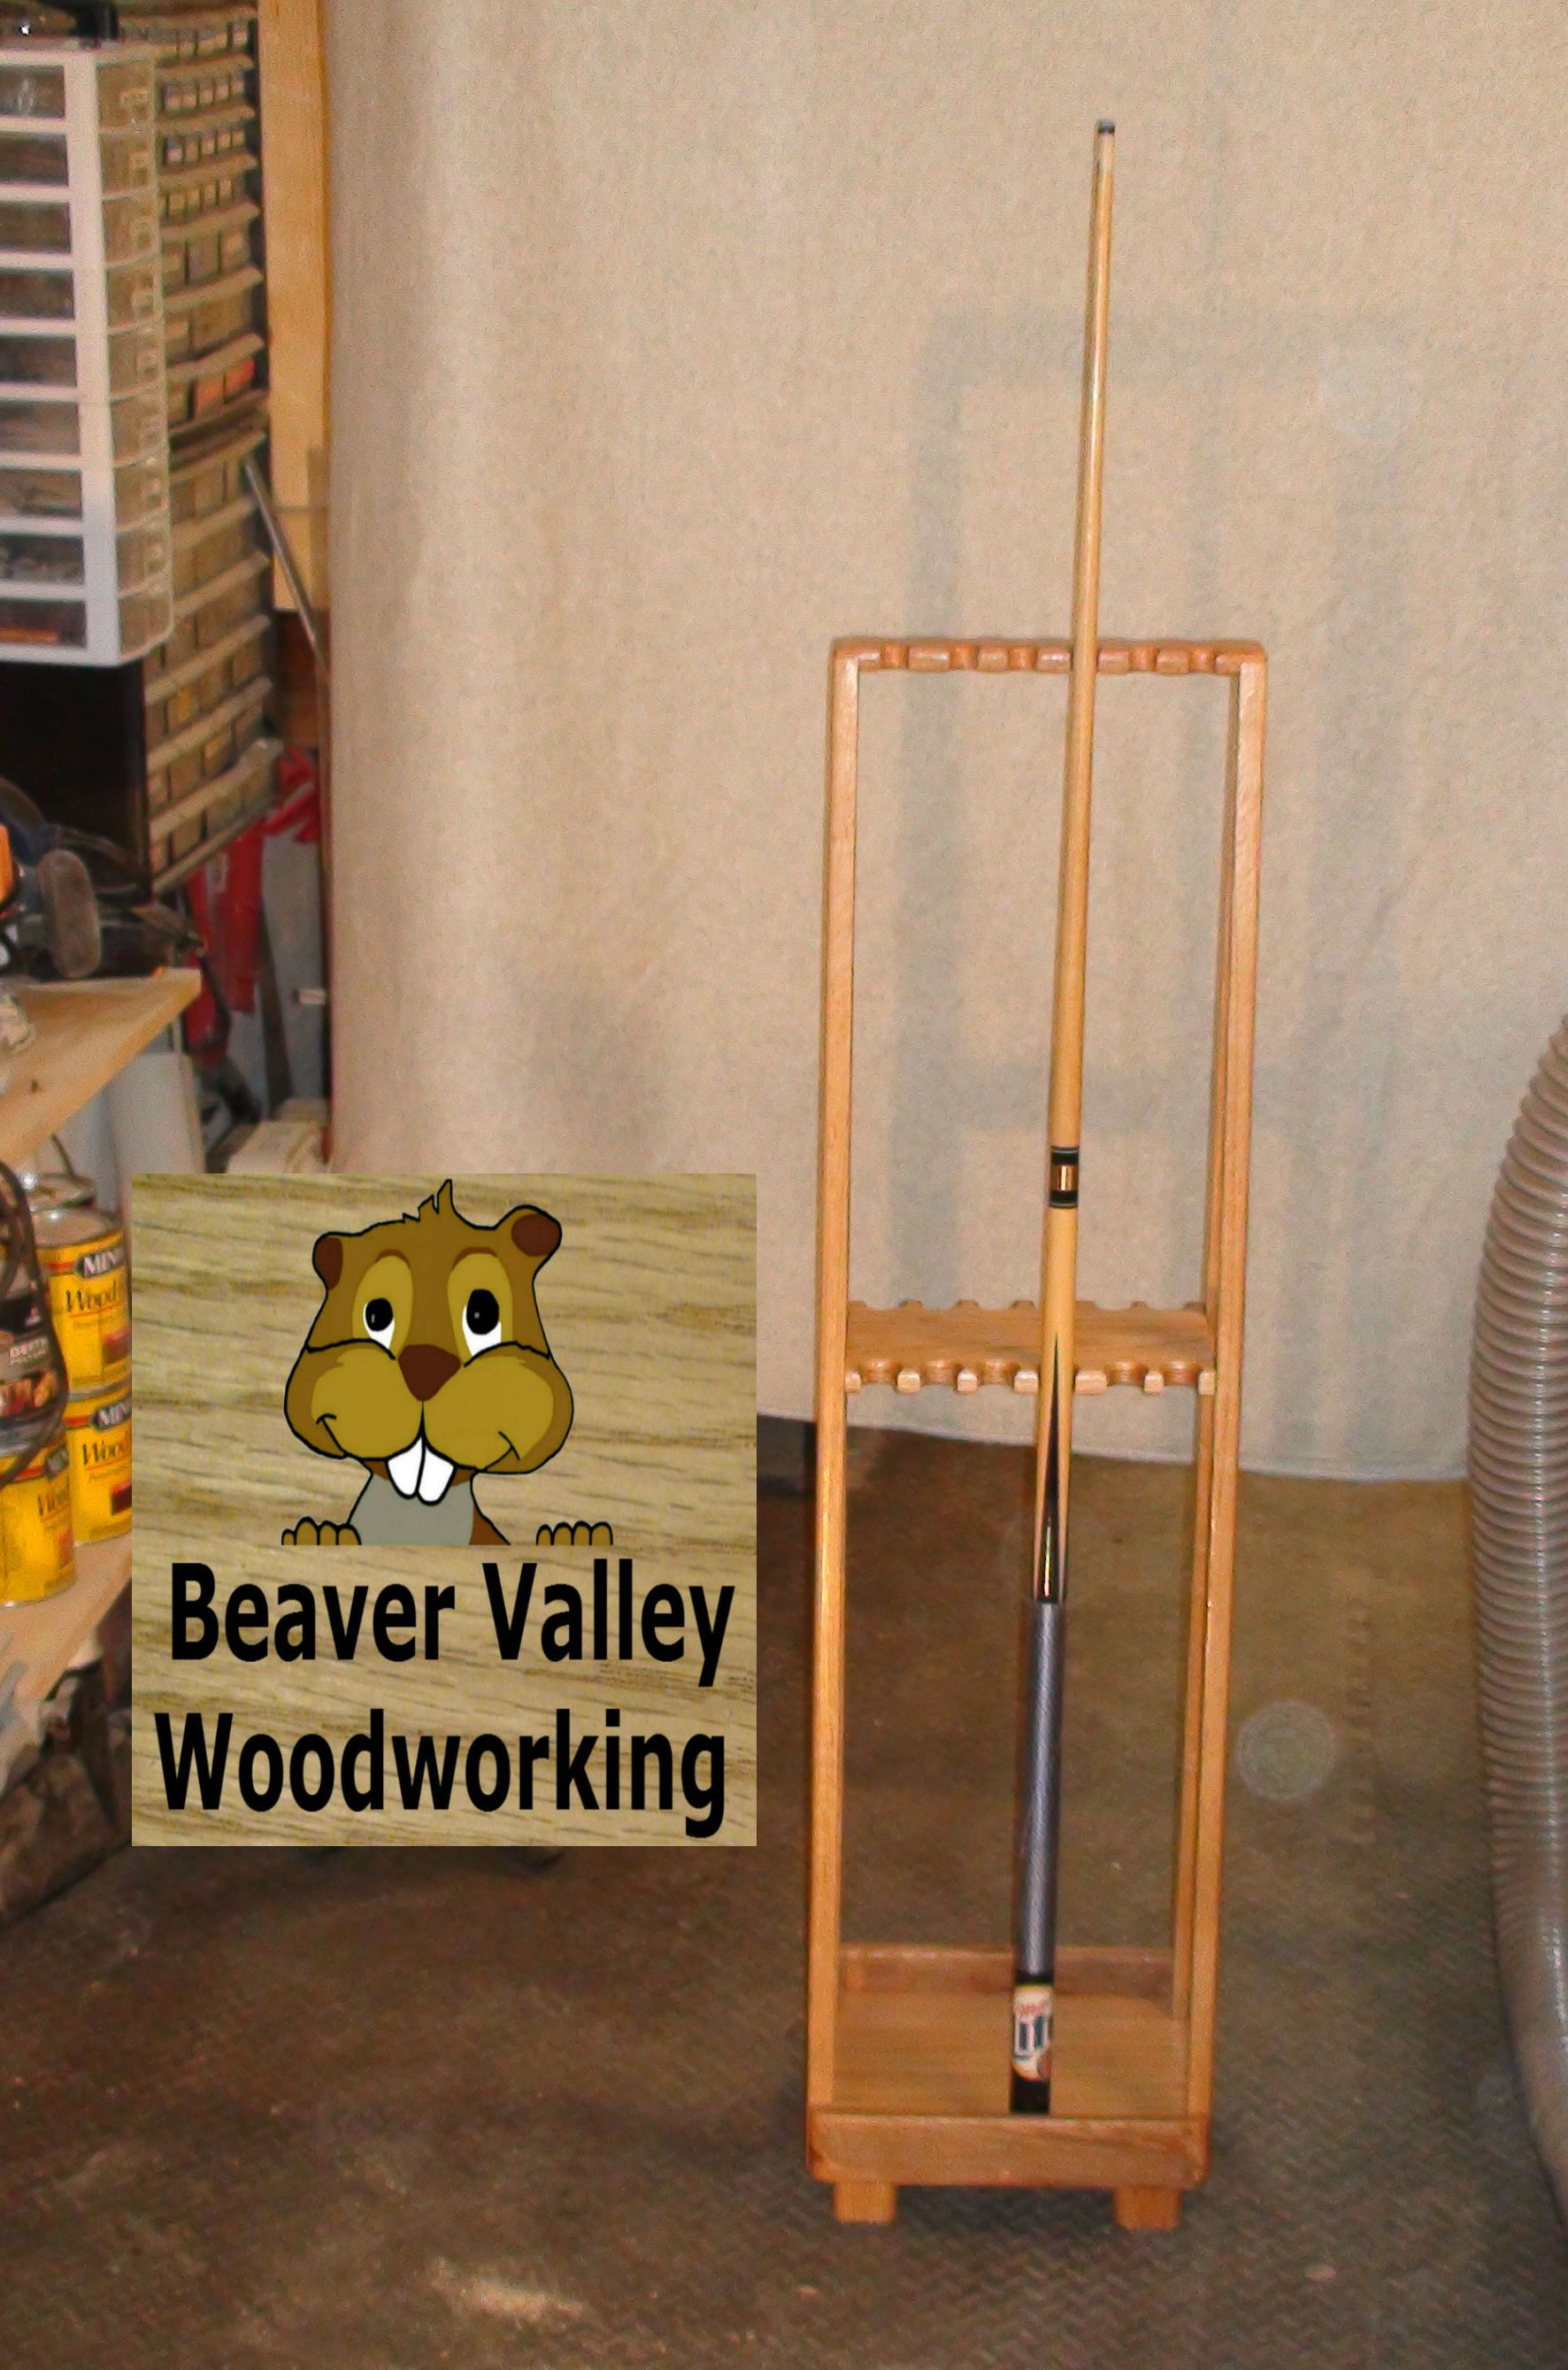 Pin By Beaver Valley Woodworking On Beaver Valley Woodworking Projects Rustic Games Organisation Hacks Pool Rack